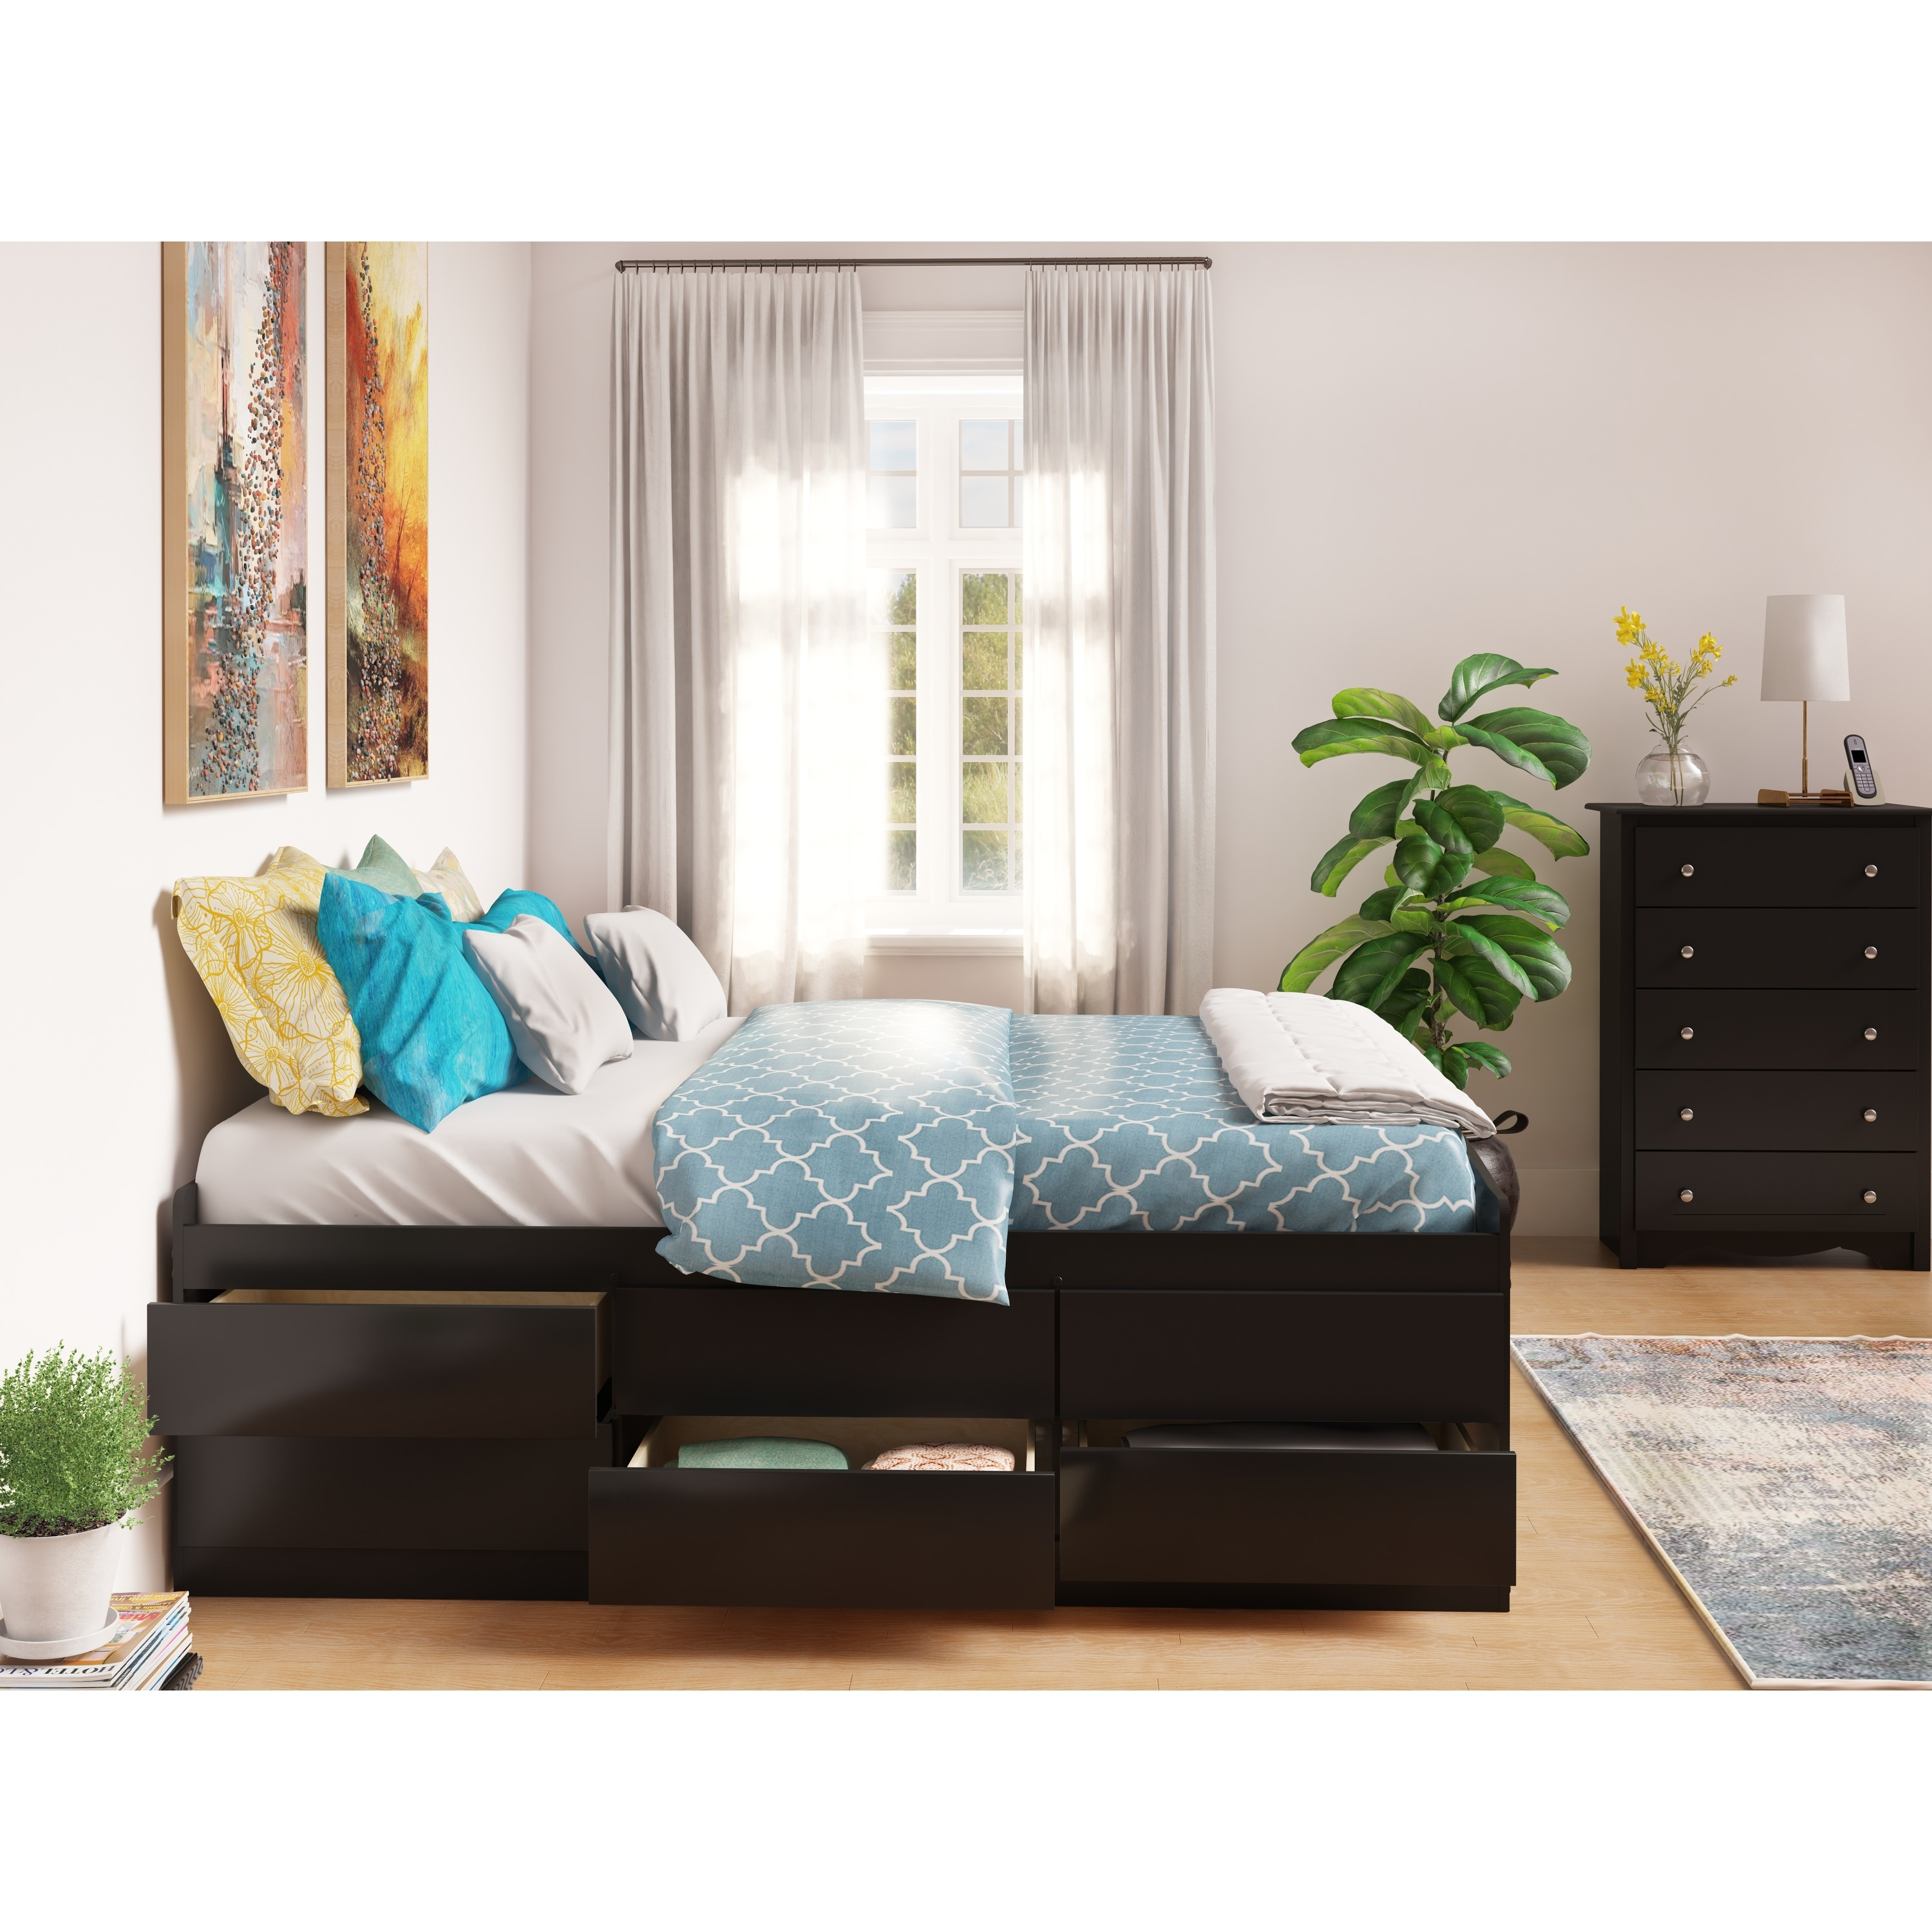 Picture of: Prepac Tall Queen Captain S Platform Storage Bed With 12 Drawers Overstock 3701480